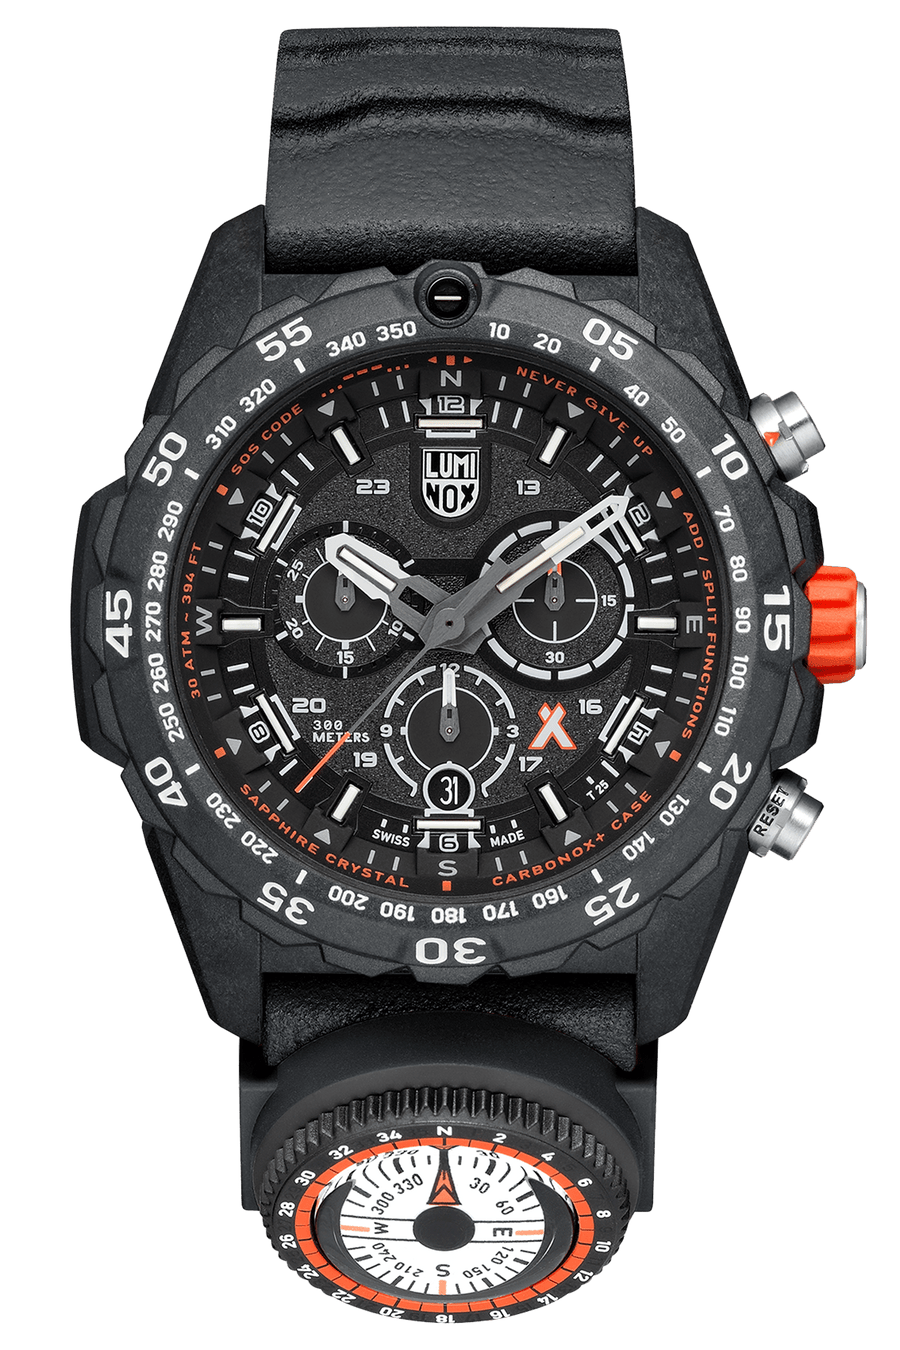 Bear Grylls Survival Chronograph MASTER Series - 3741